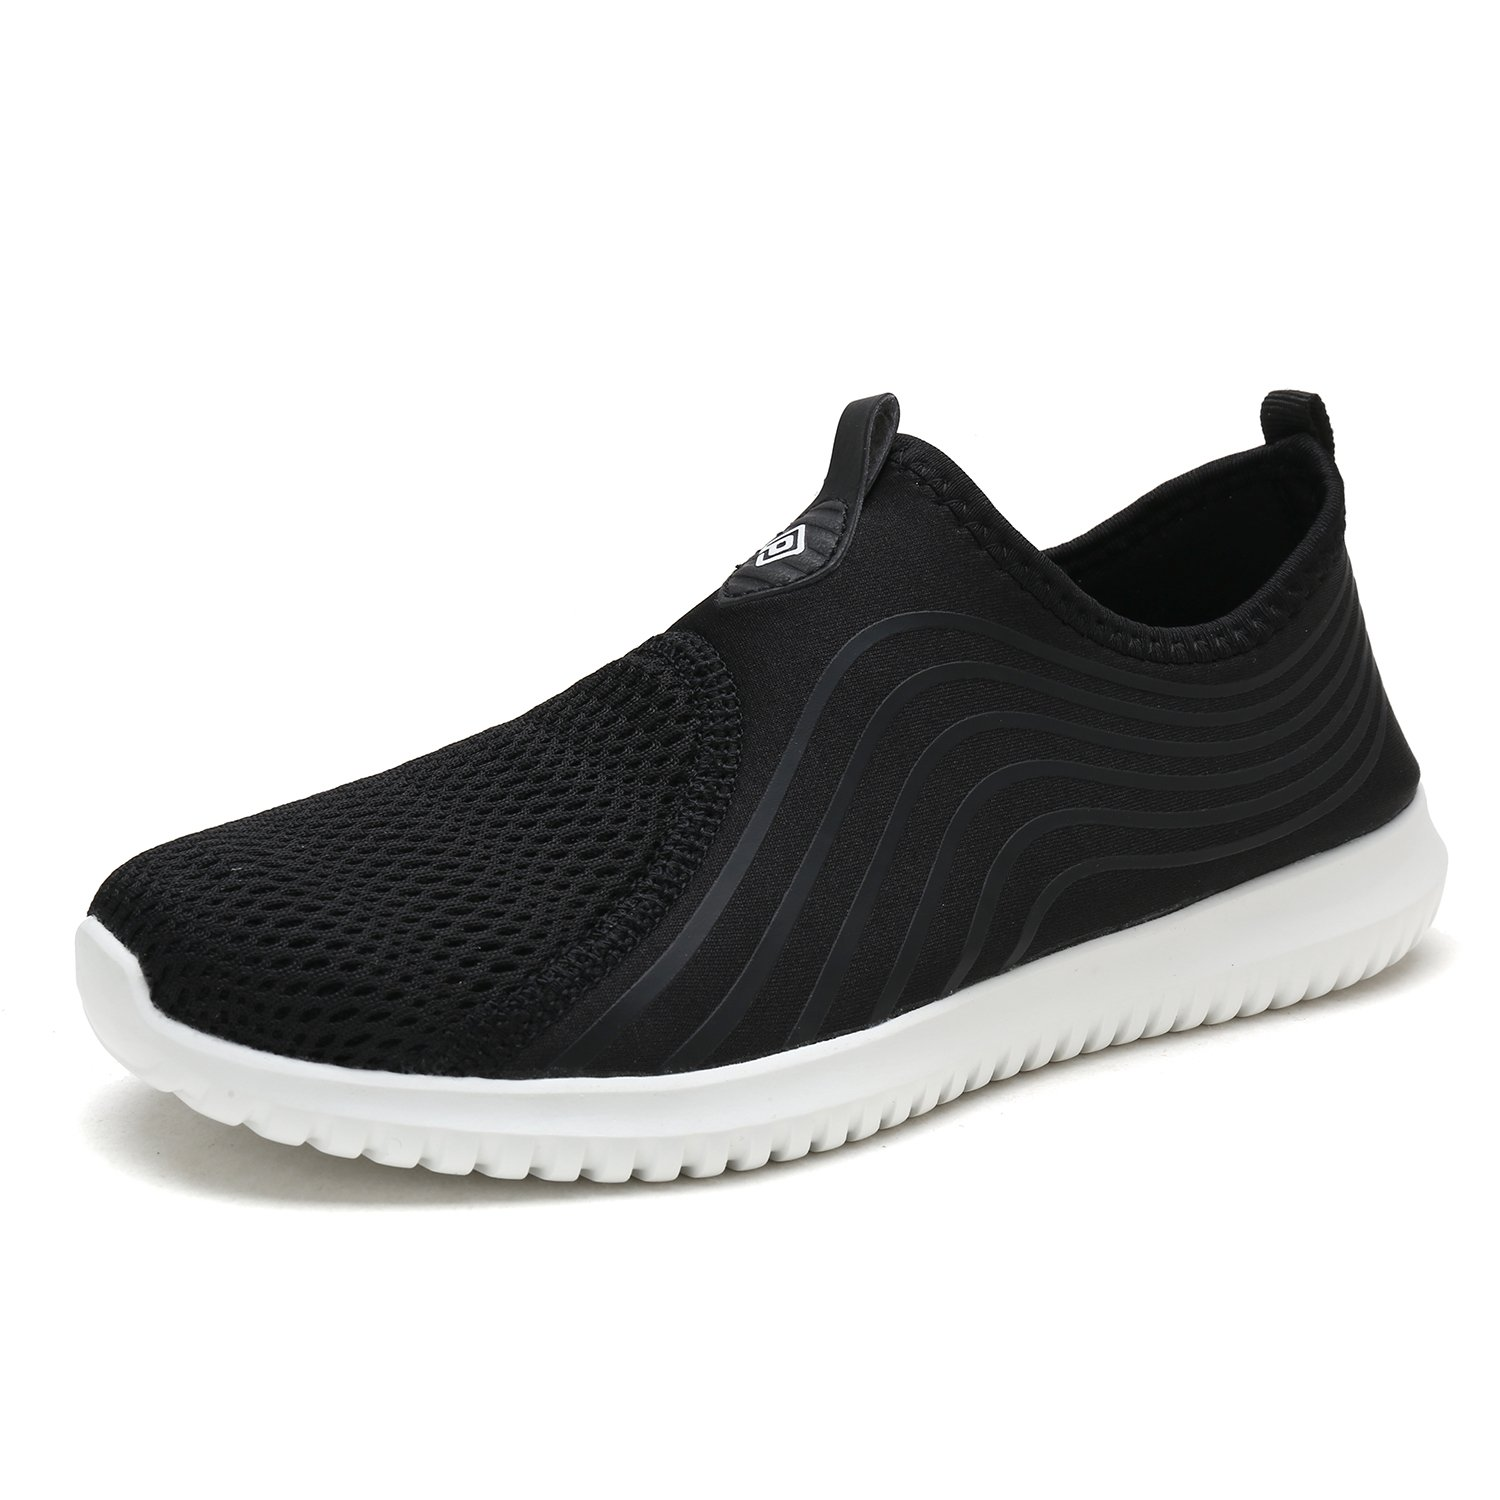 DREAM PAIRS Quick-Dry Water Shoes Sports Walking Casual Sneakers for Women B07886LB5M 7.5 M US|Black/White